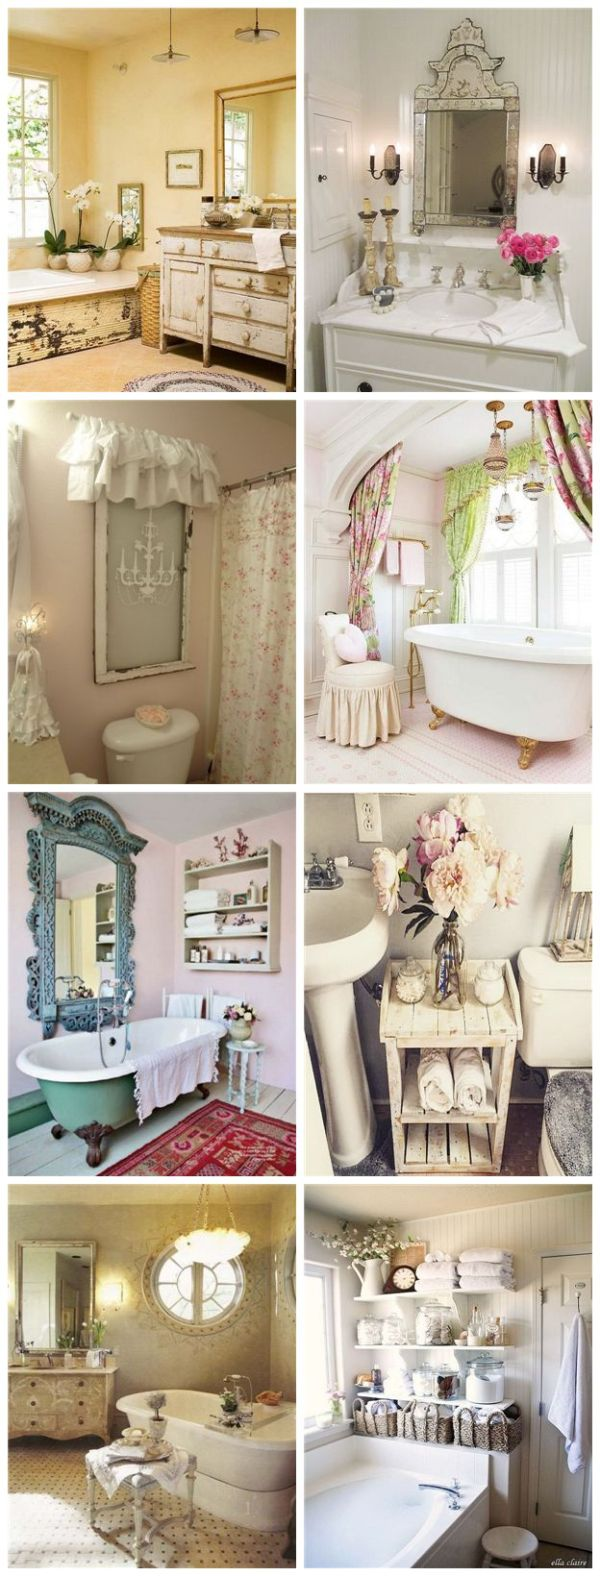 25 awesome shabby chic bathroom ideas for creative juice. Black Bedroom Furniture Sets. Home Design Ideas